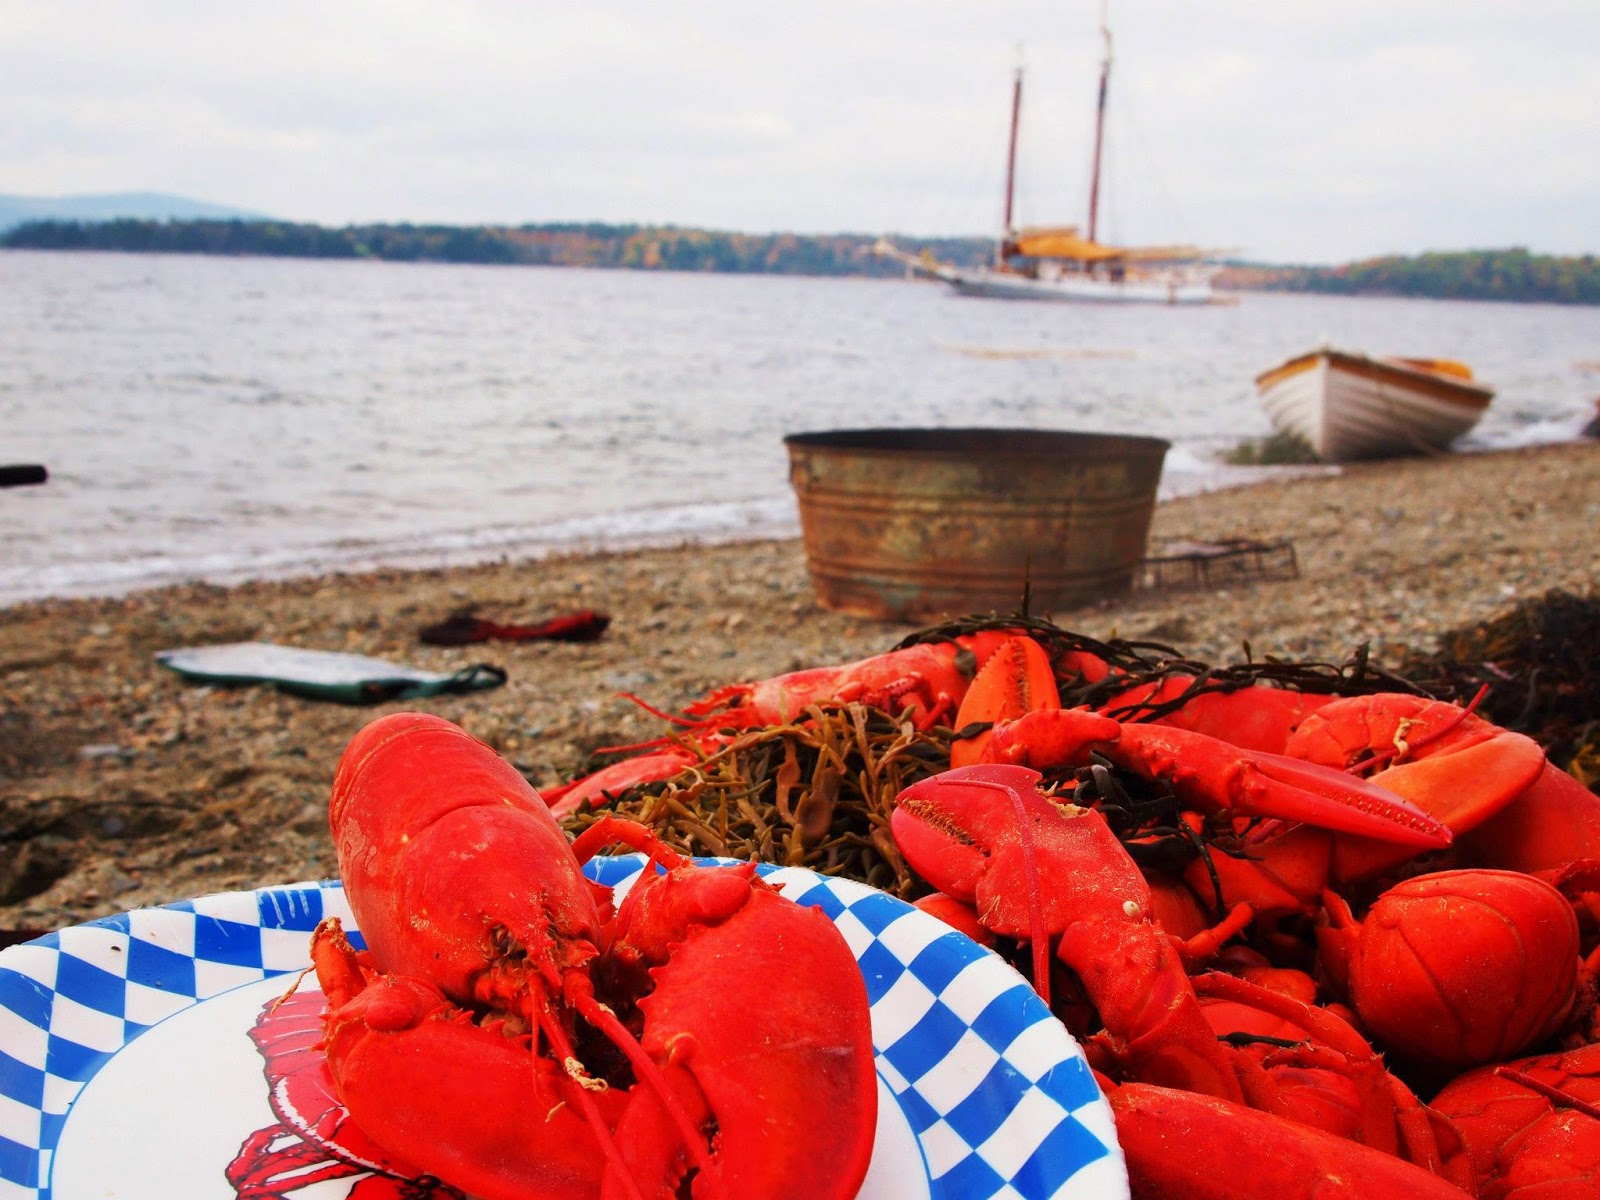 Traditional New England Clambake Recipe (also known as a Maine Lobster Bake, Boil or Shore Dinner)